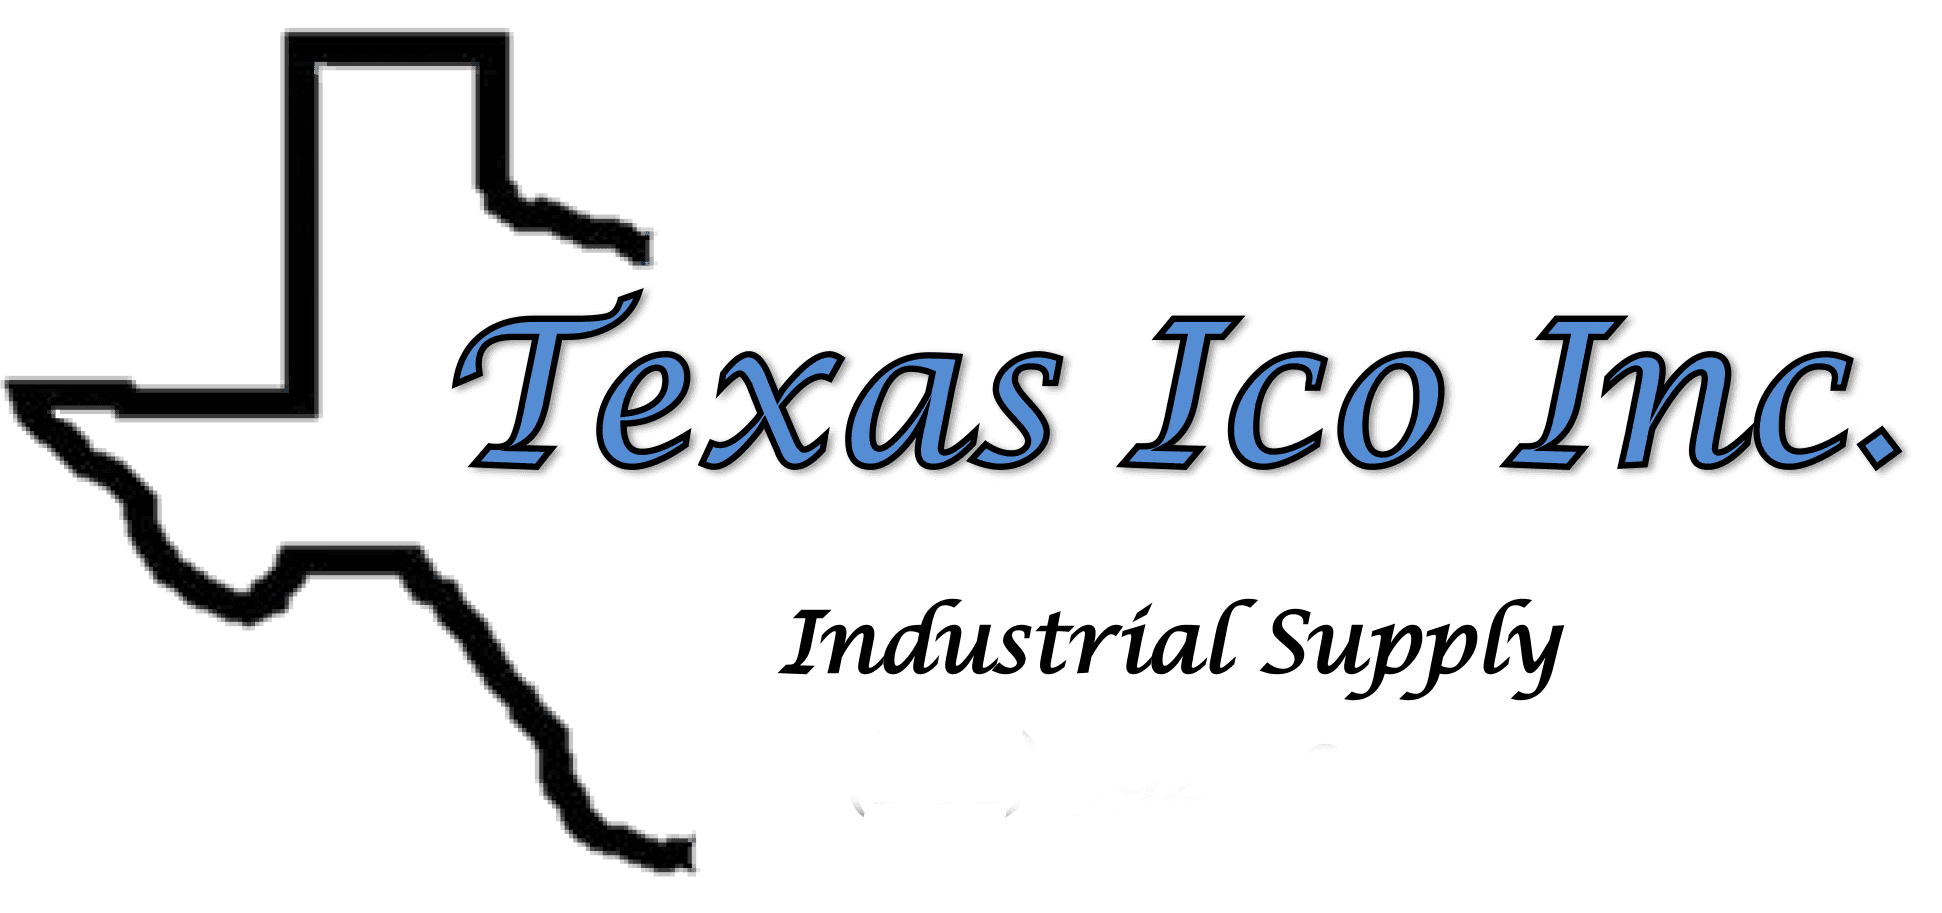 Texas Ico Inc  - Cleveland, TX - Flanges